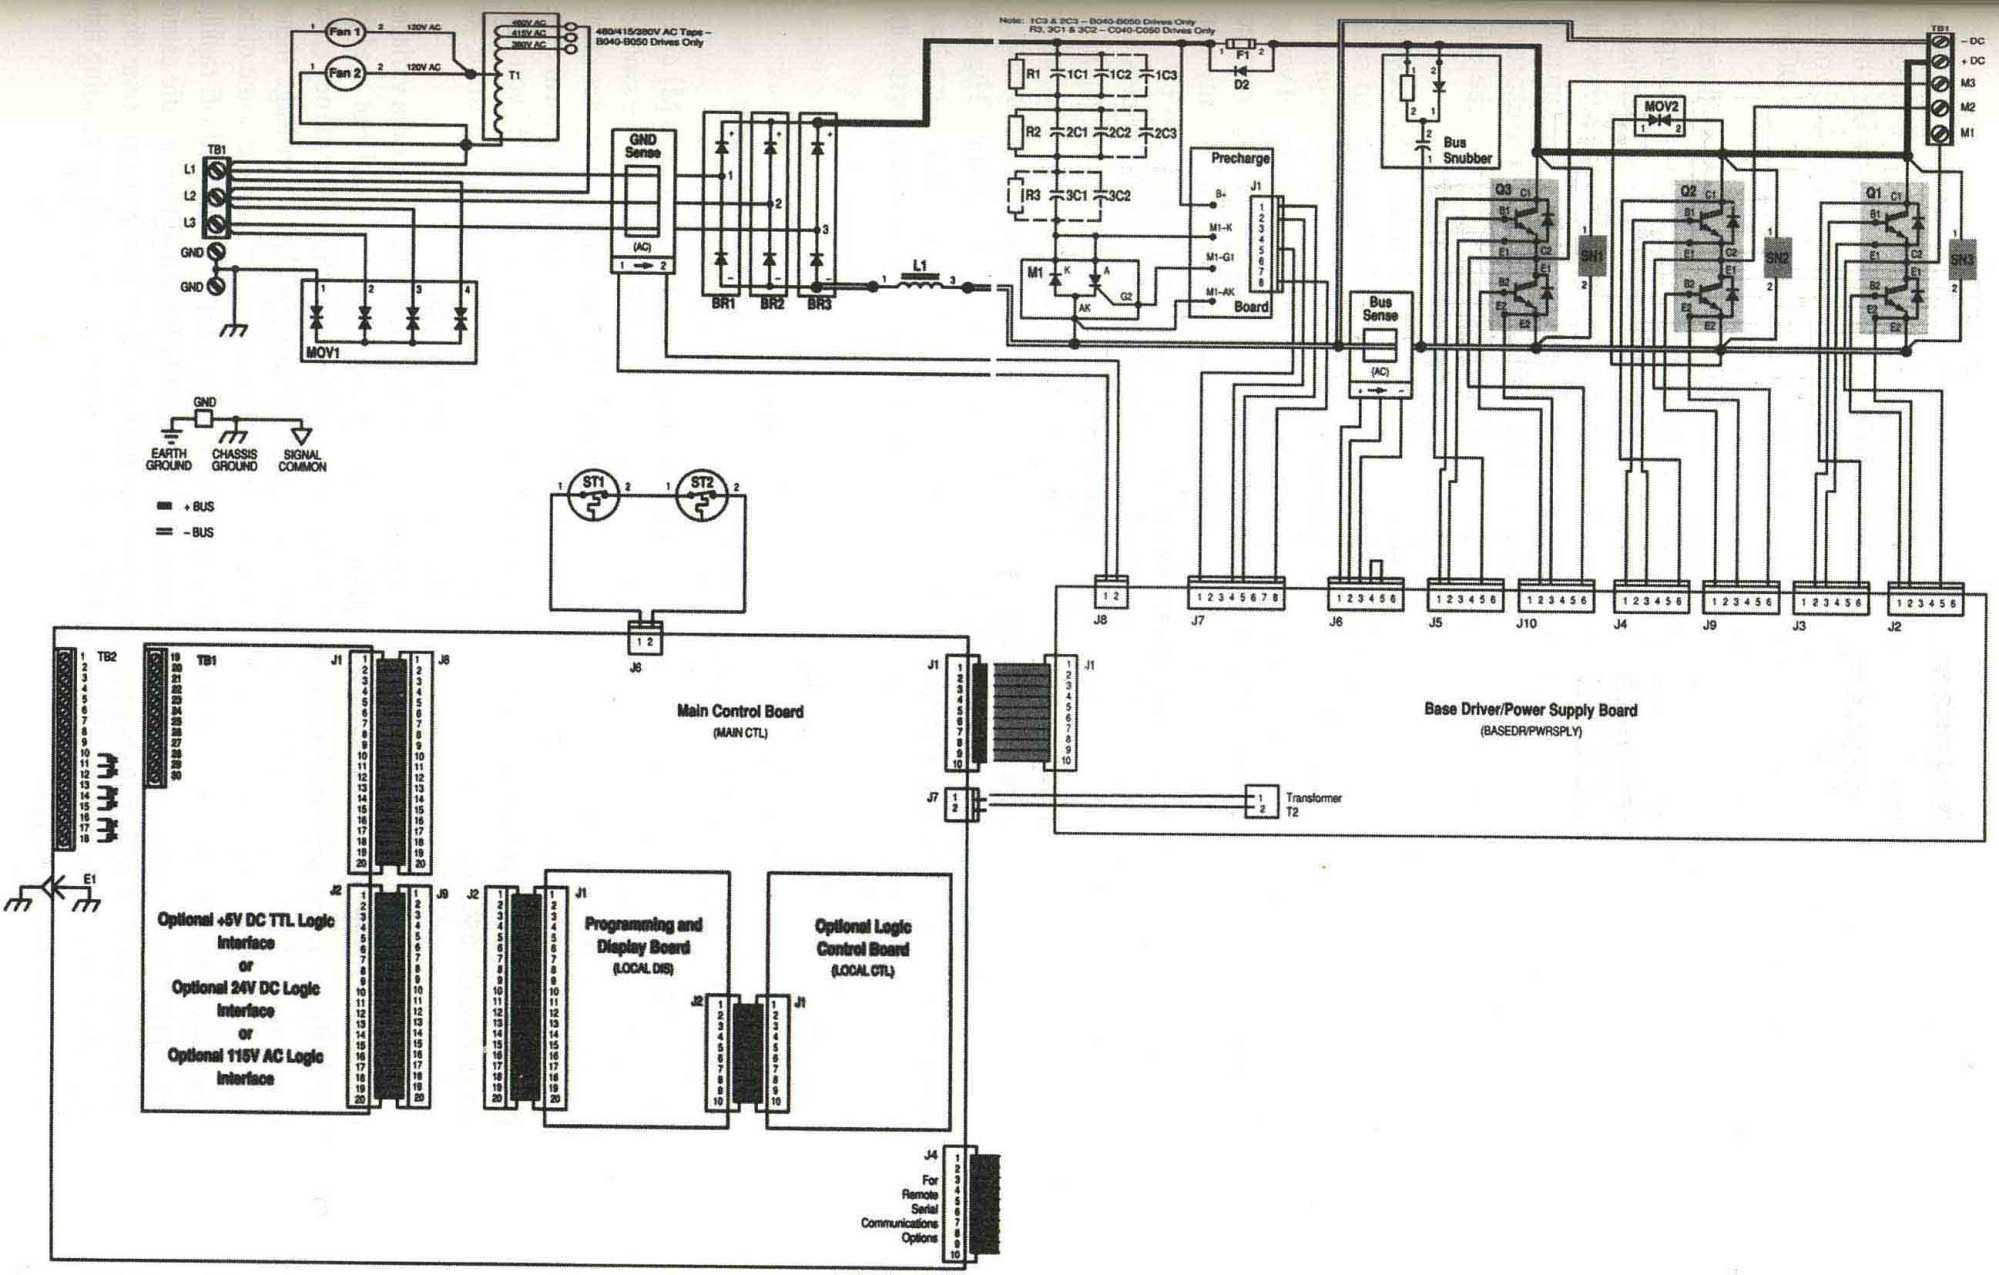 hight resolution of click for full sized schematic